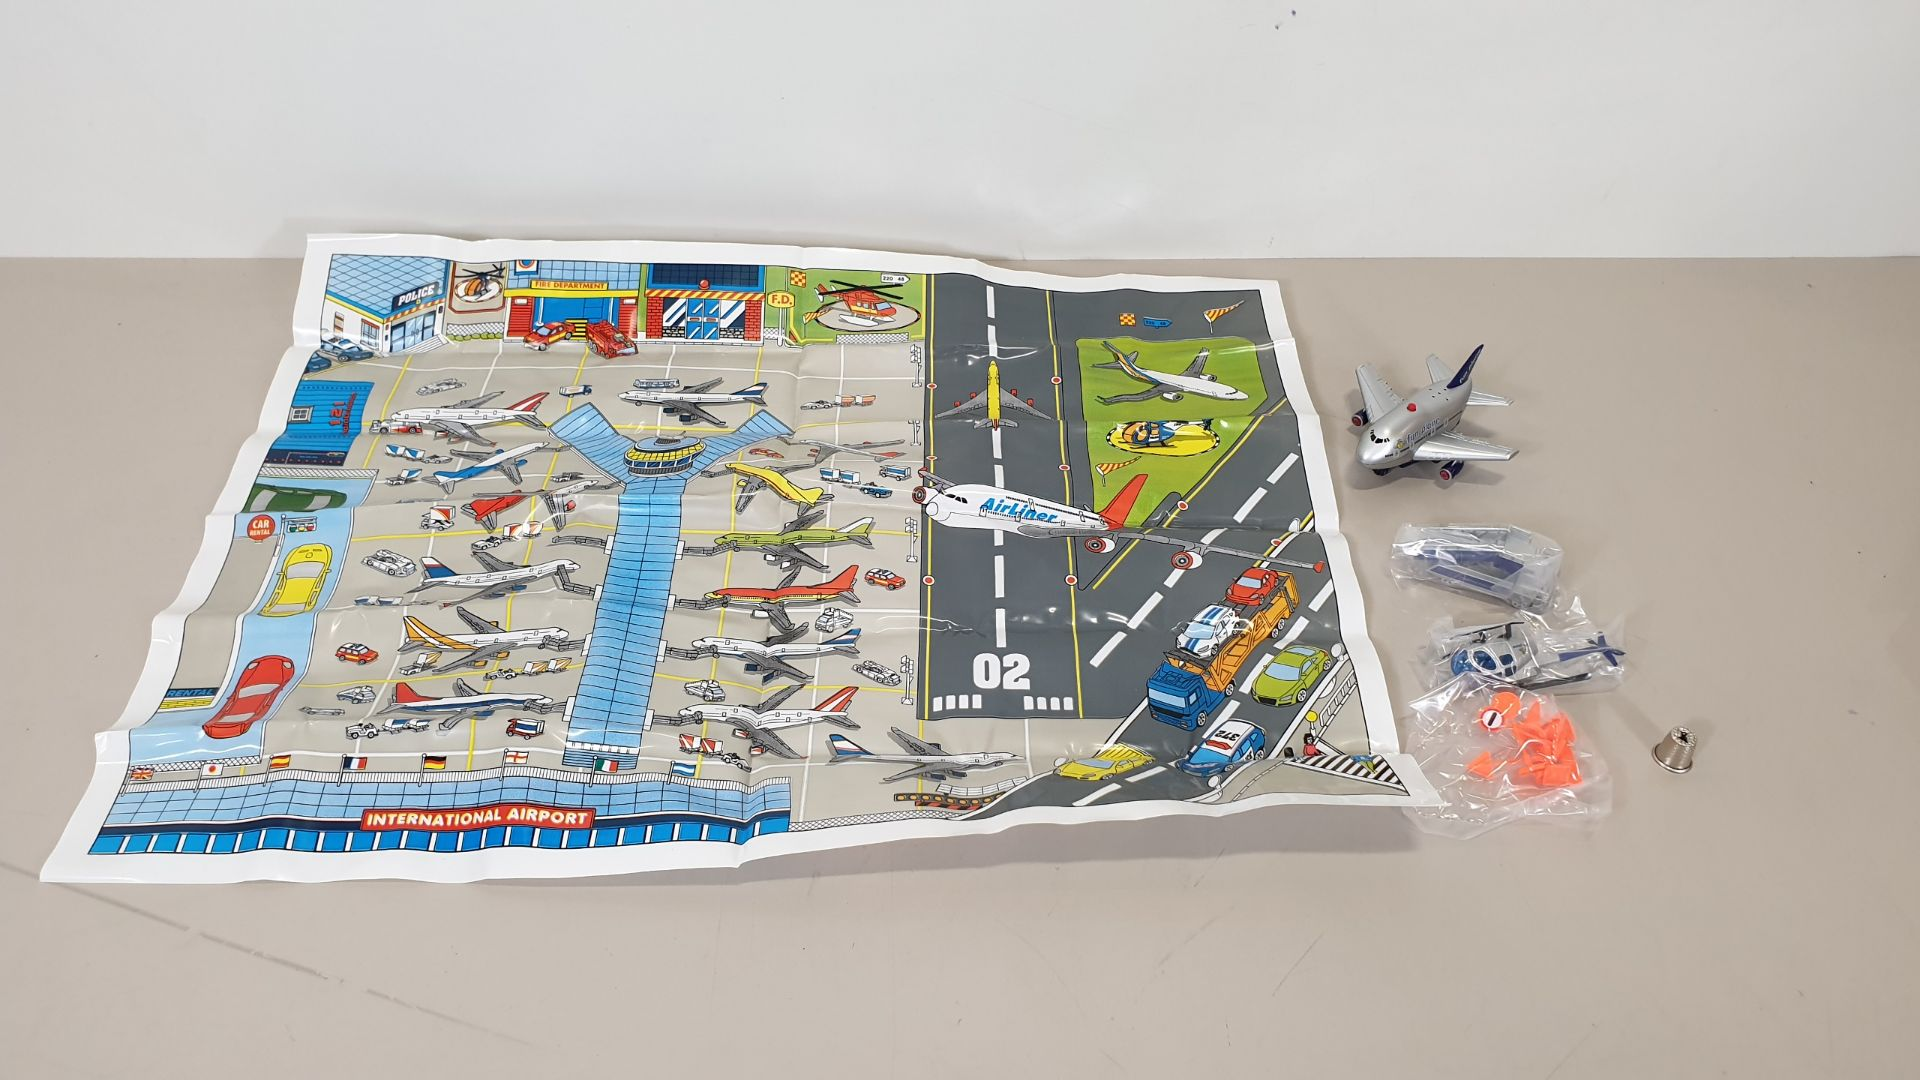 Lot 56 - 48 X BRAND NEW FUN PLANE AIRPORT SETS - INCLUDES 1 X FUN PLANE (BATTERIES INCLUDED), 1 ROAD MAP, 1